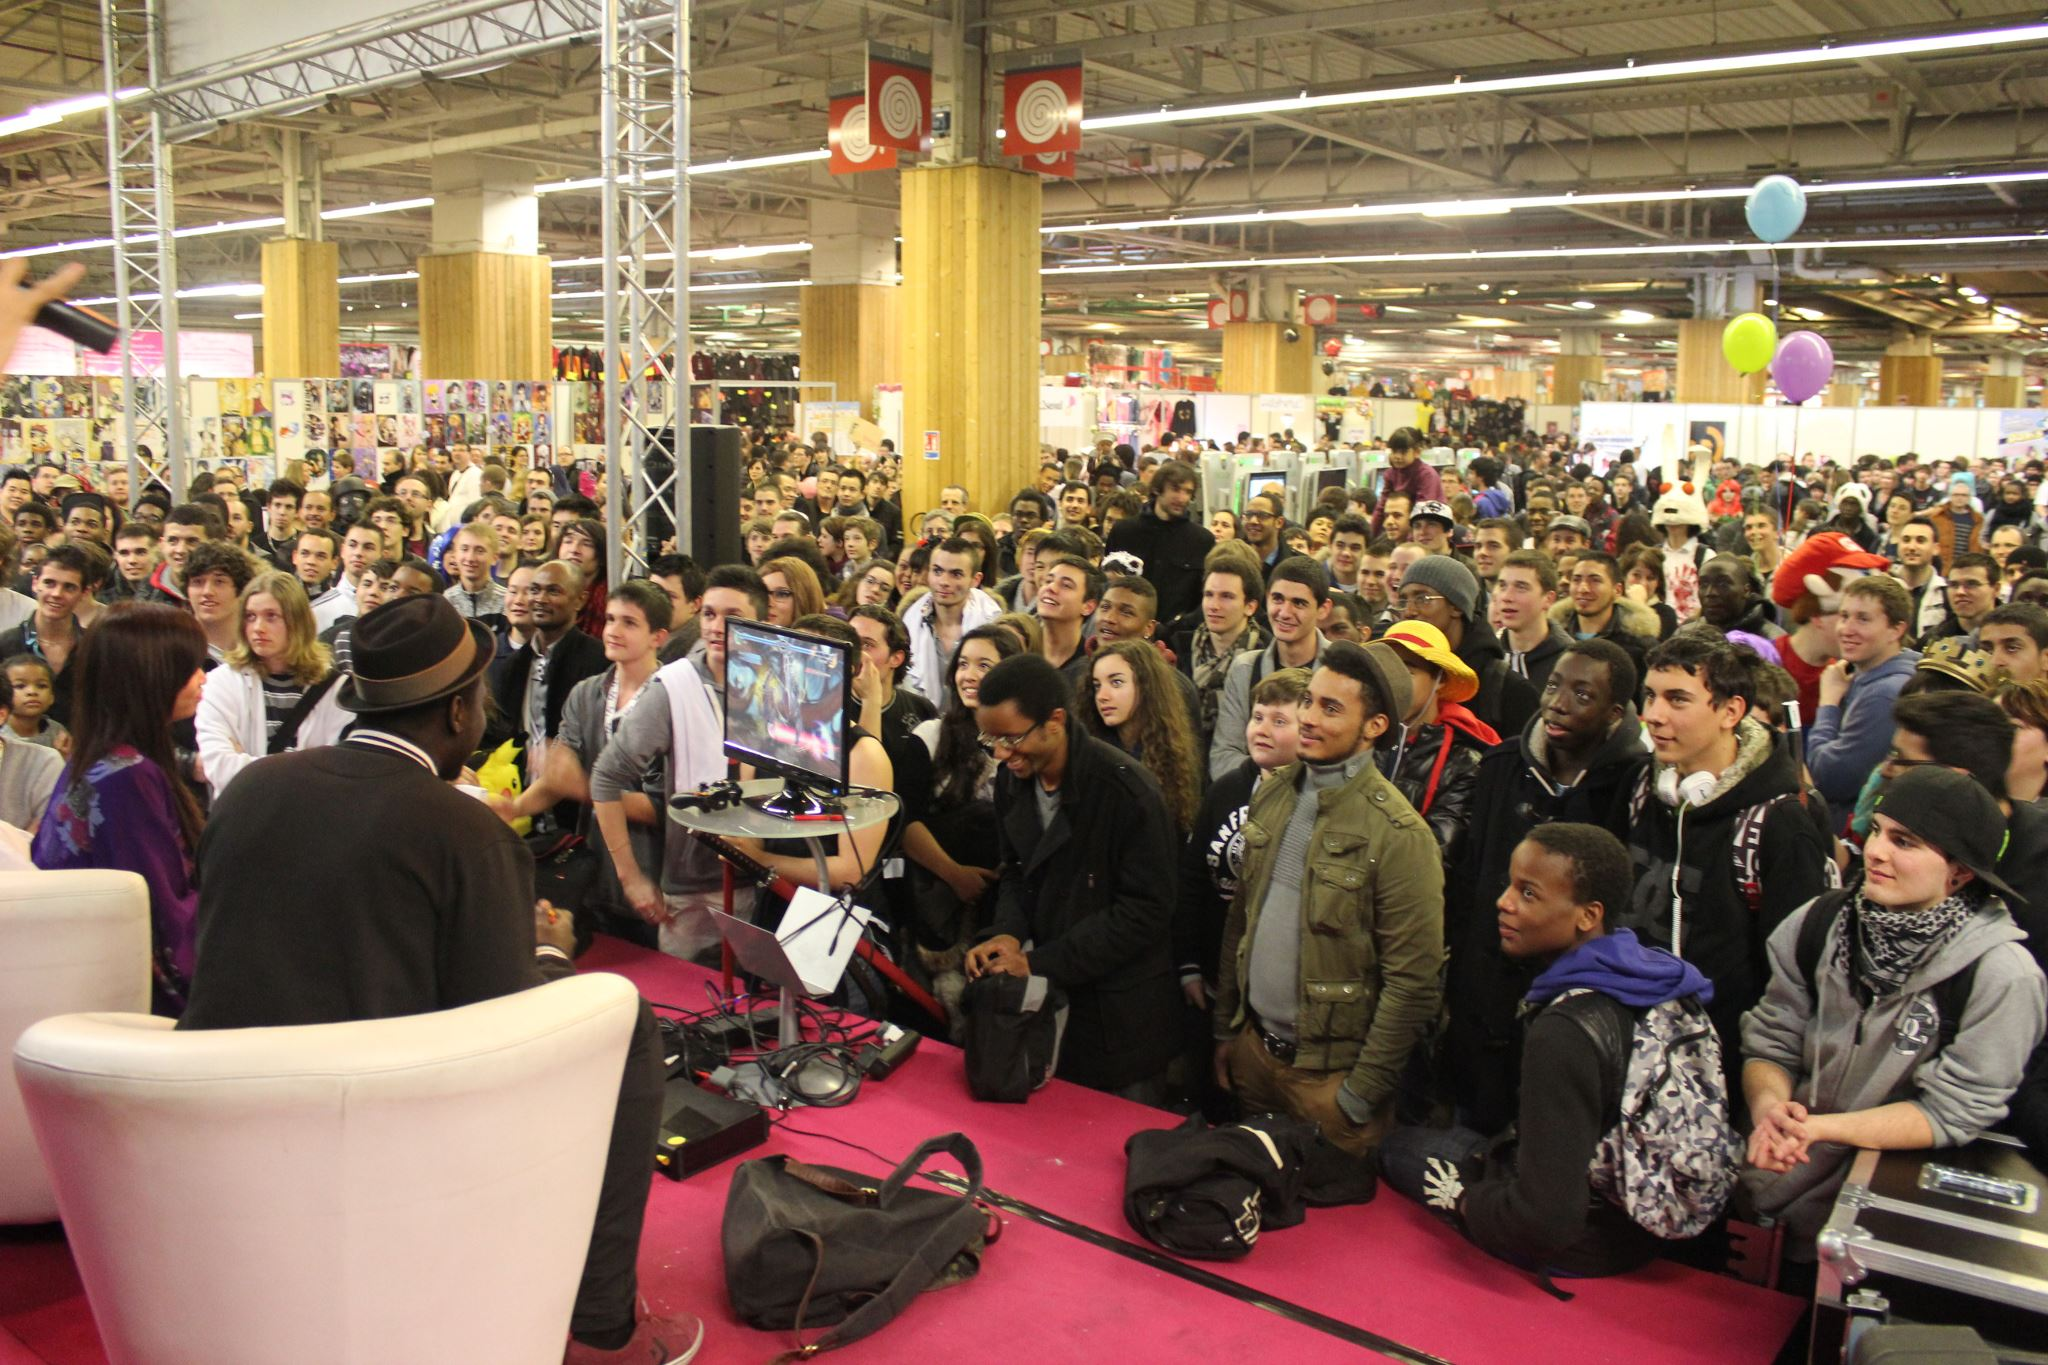 Animation Kayane à Soul Calibur V ou Injustice Gods Among Us sur la scène du stand :)